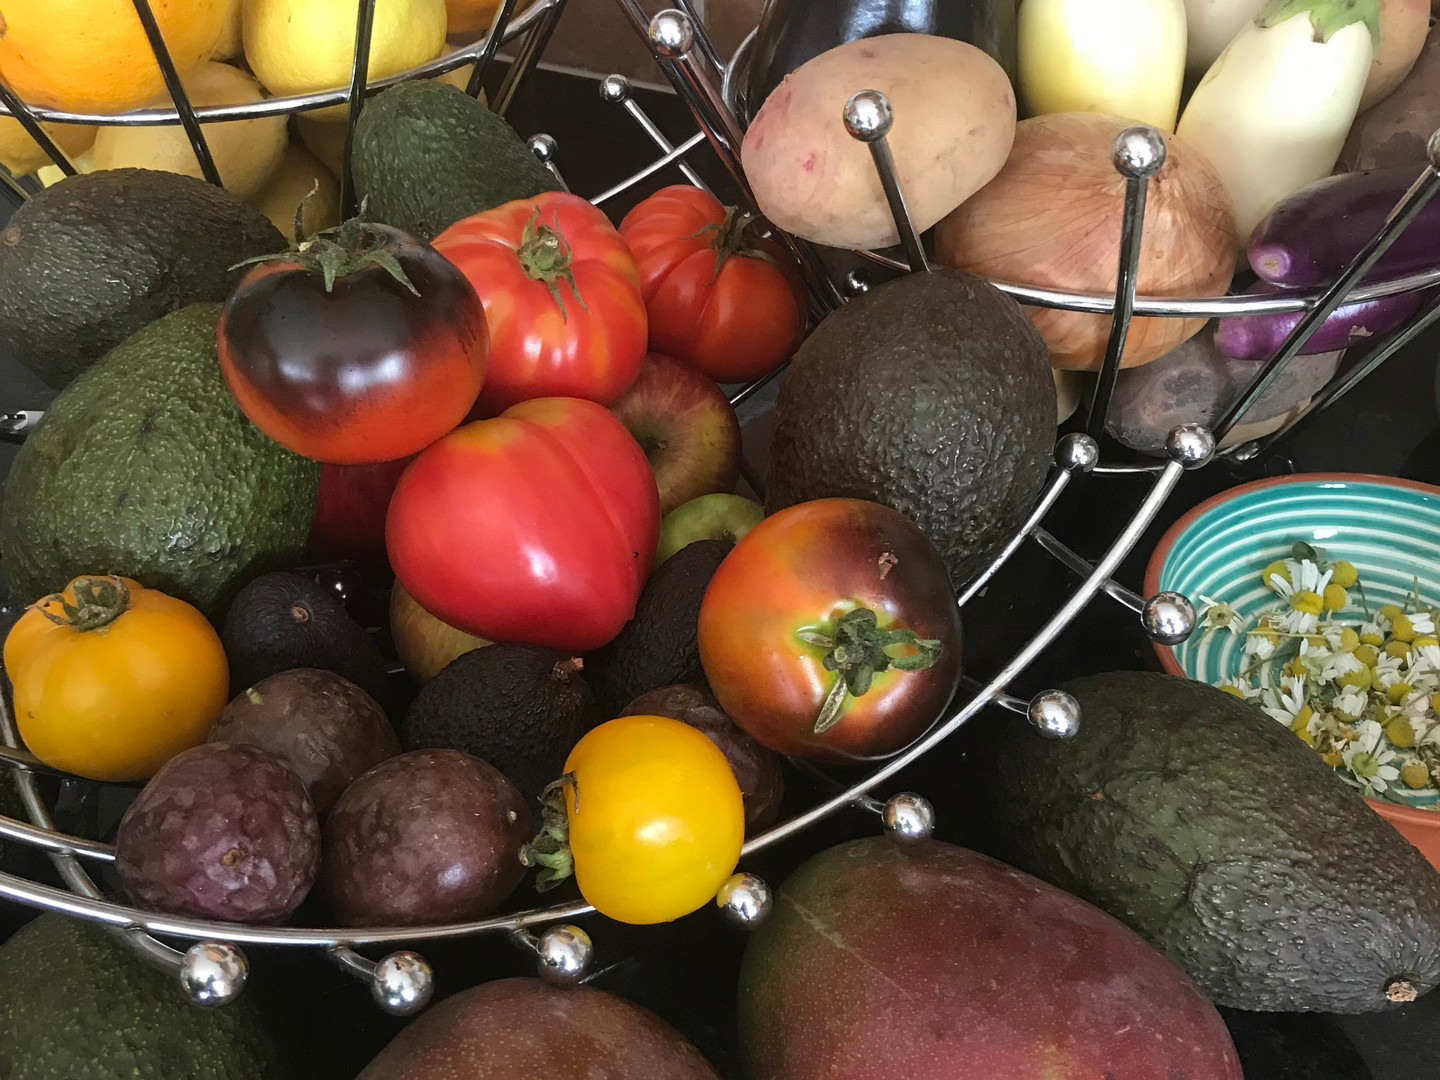 Organic vegetables & fruits are availabl